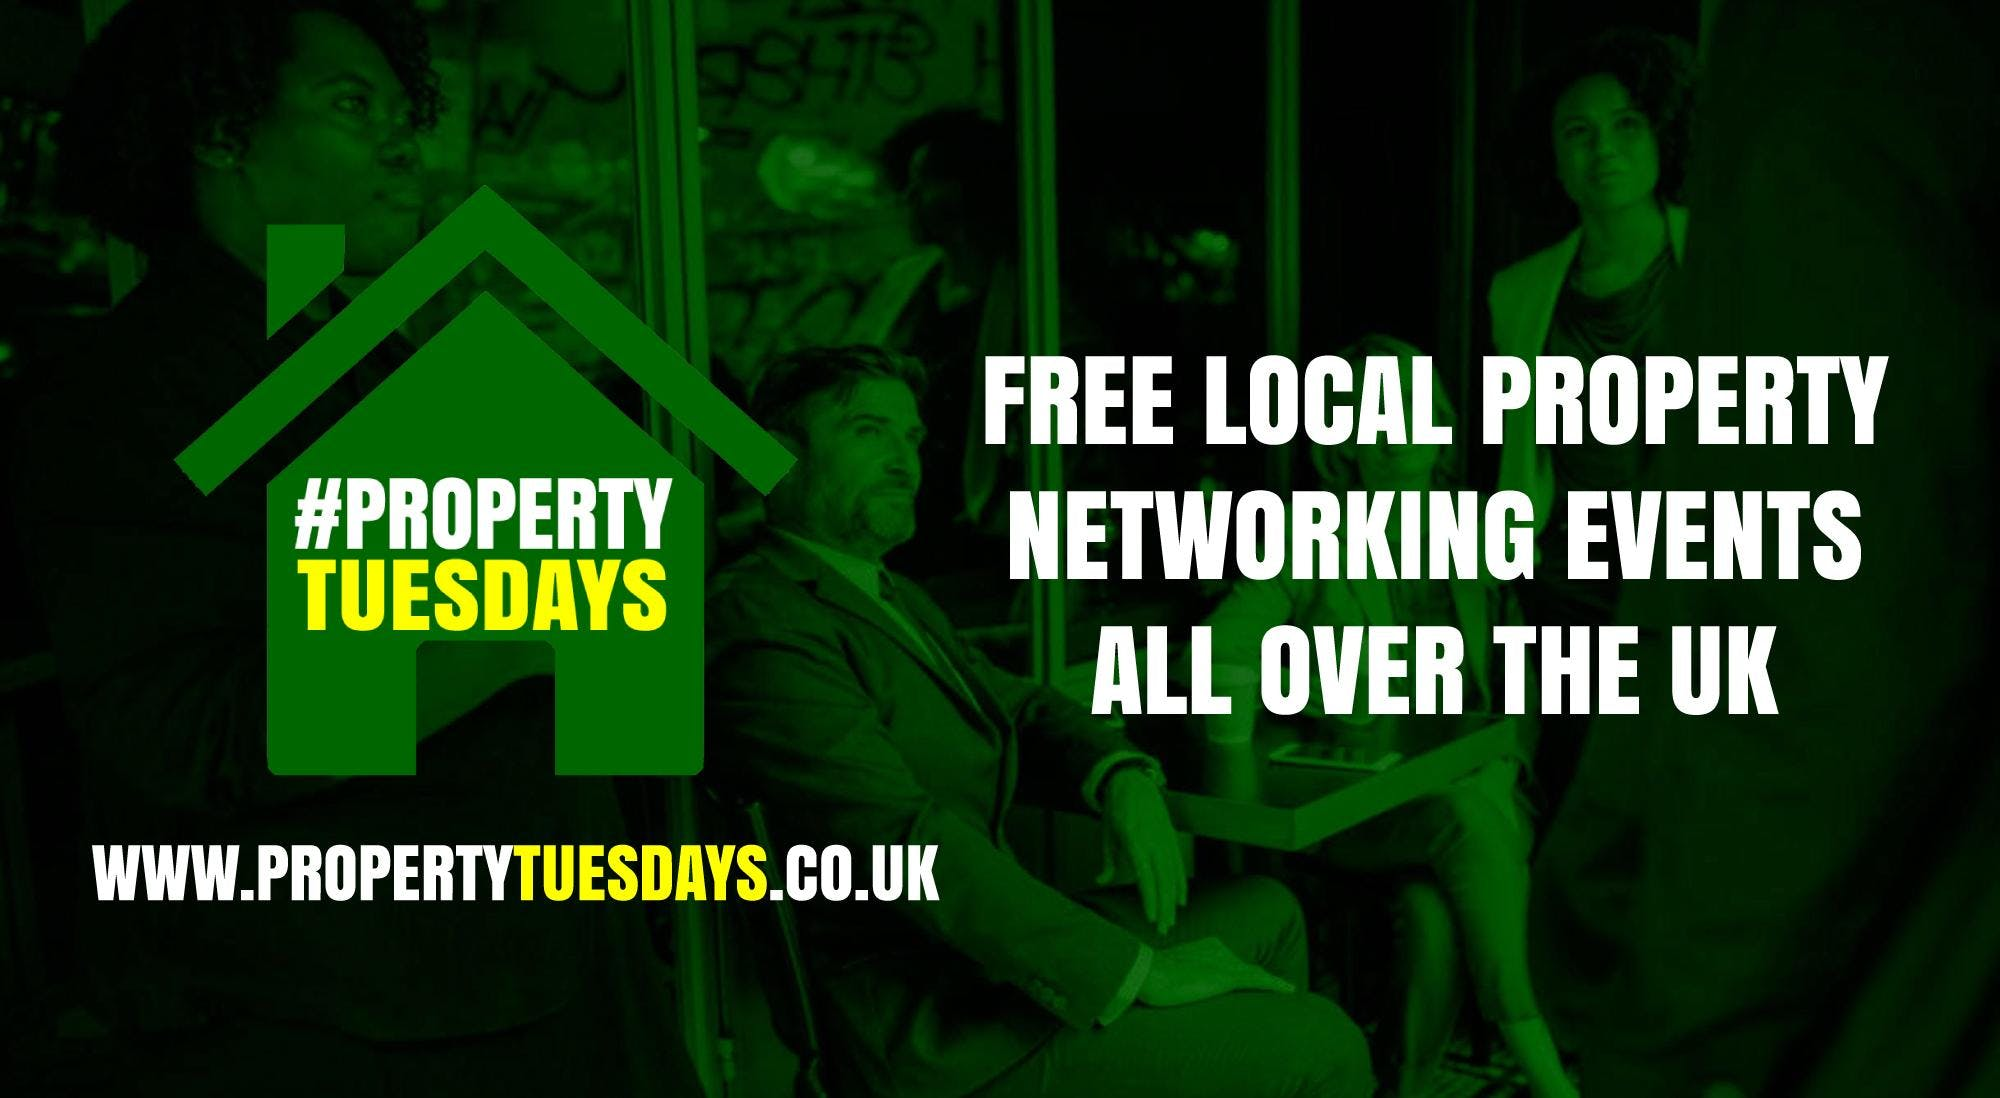 Property Tuesdays! Free property networking event in Wombwell